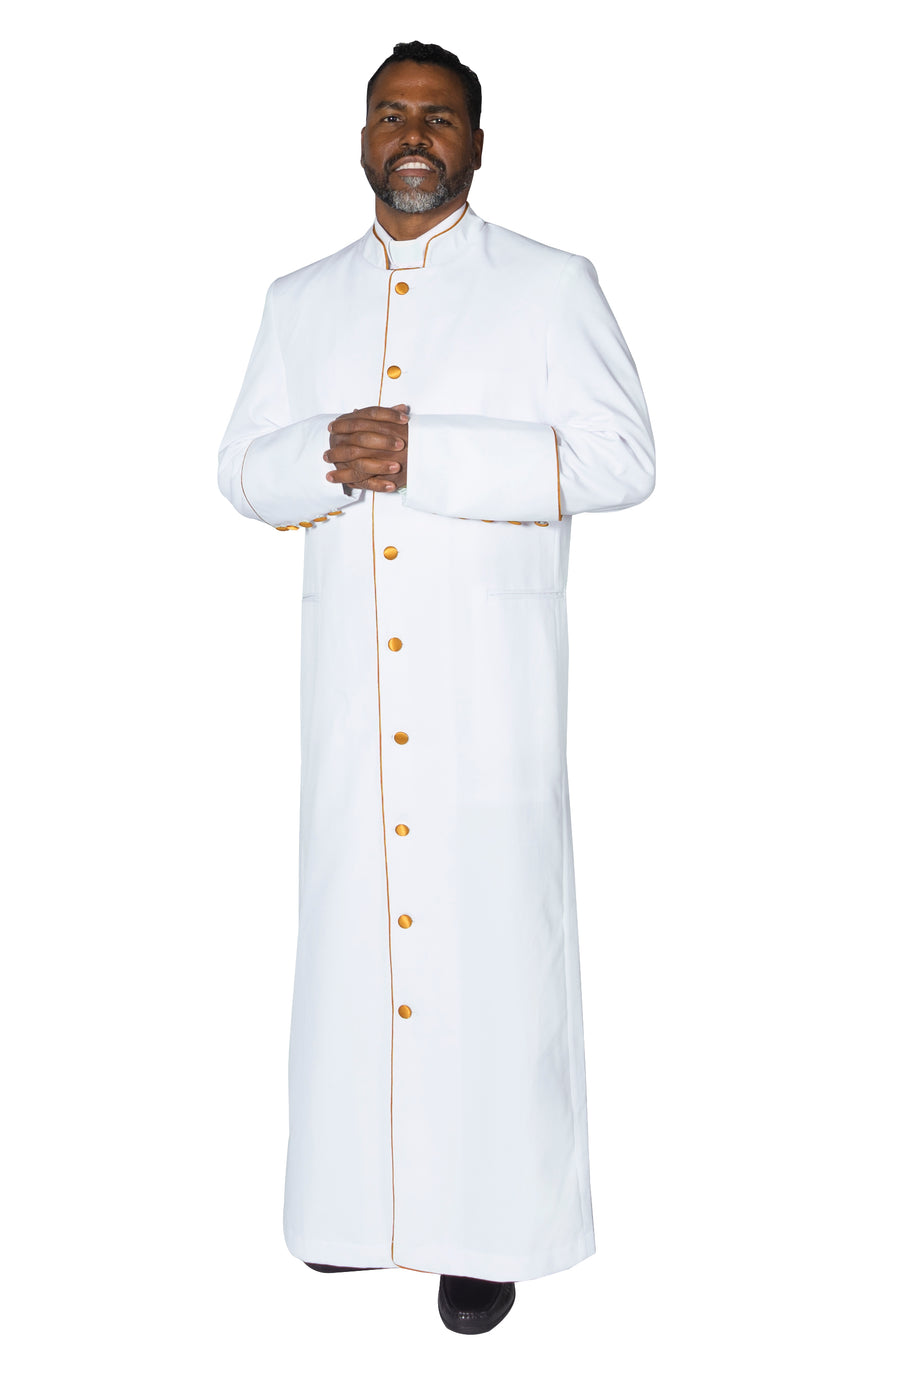 MENZ Clergy Robe Cassock Vestment for Pastor White/Gold